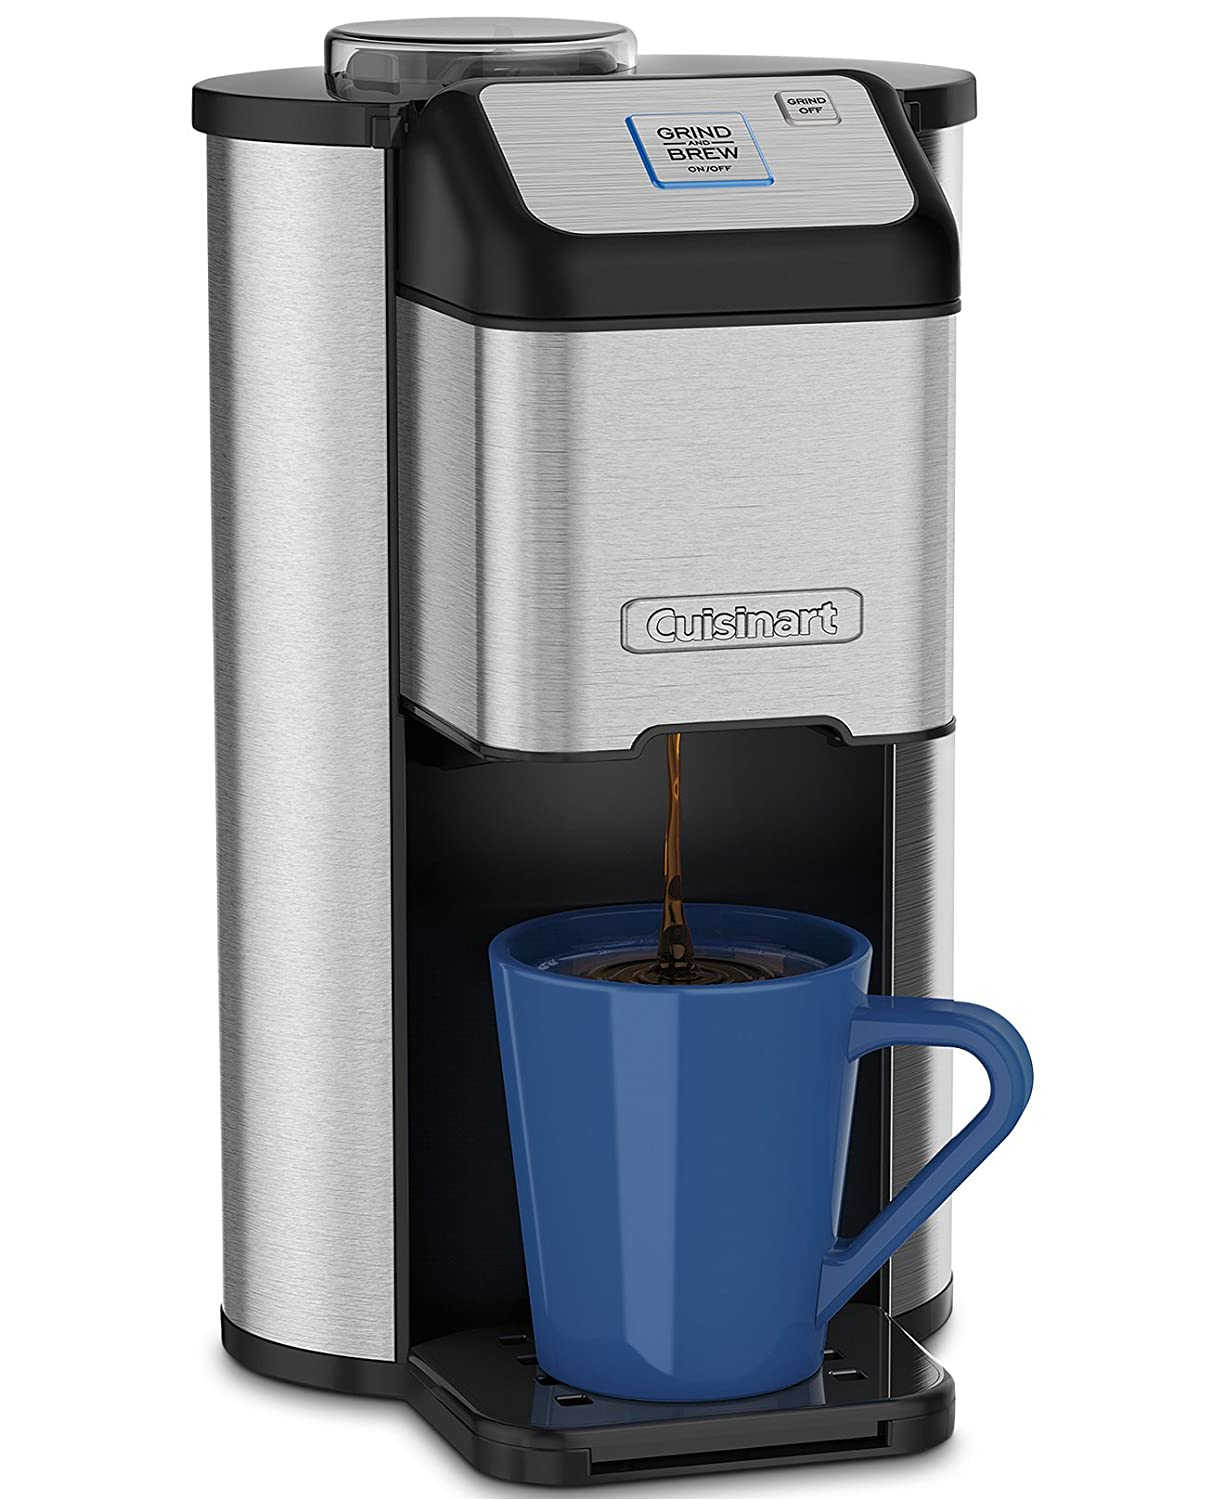 Best coffee maker with grinder automatic and for Small apartment coffee maker